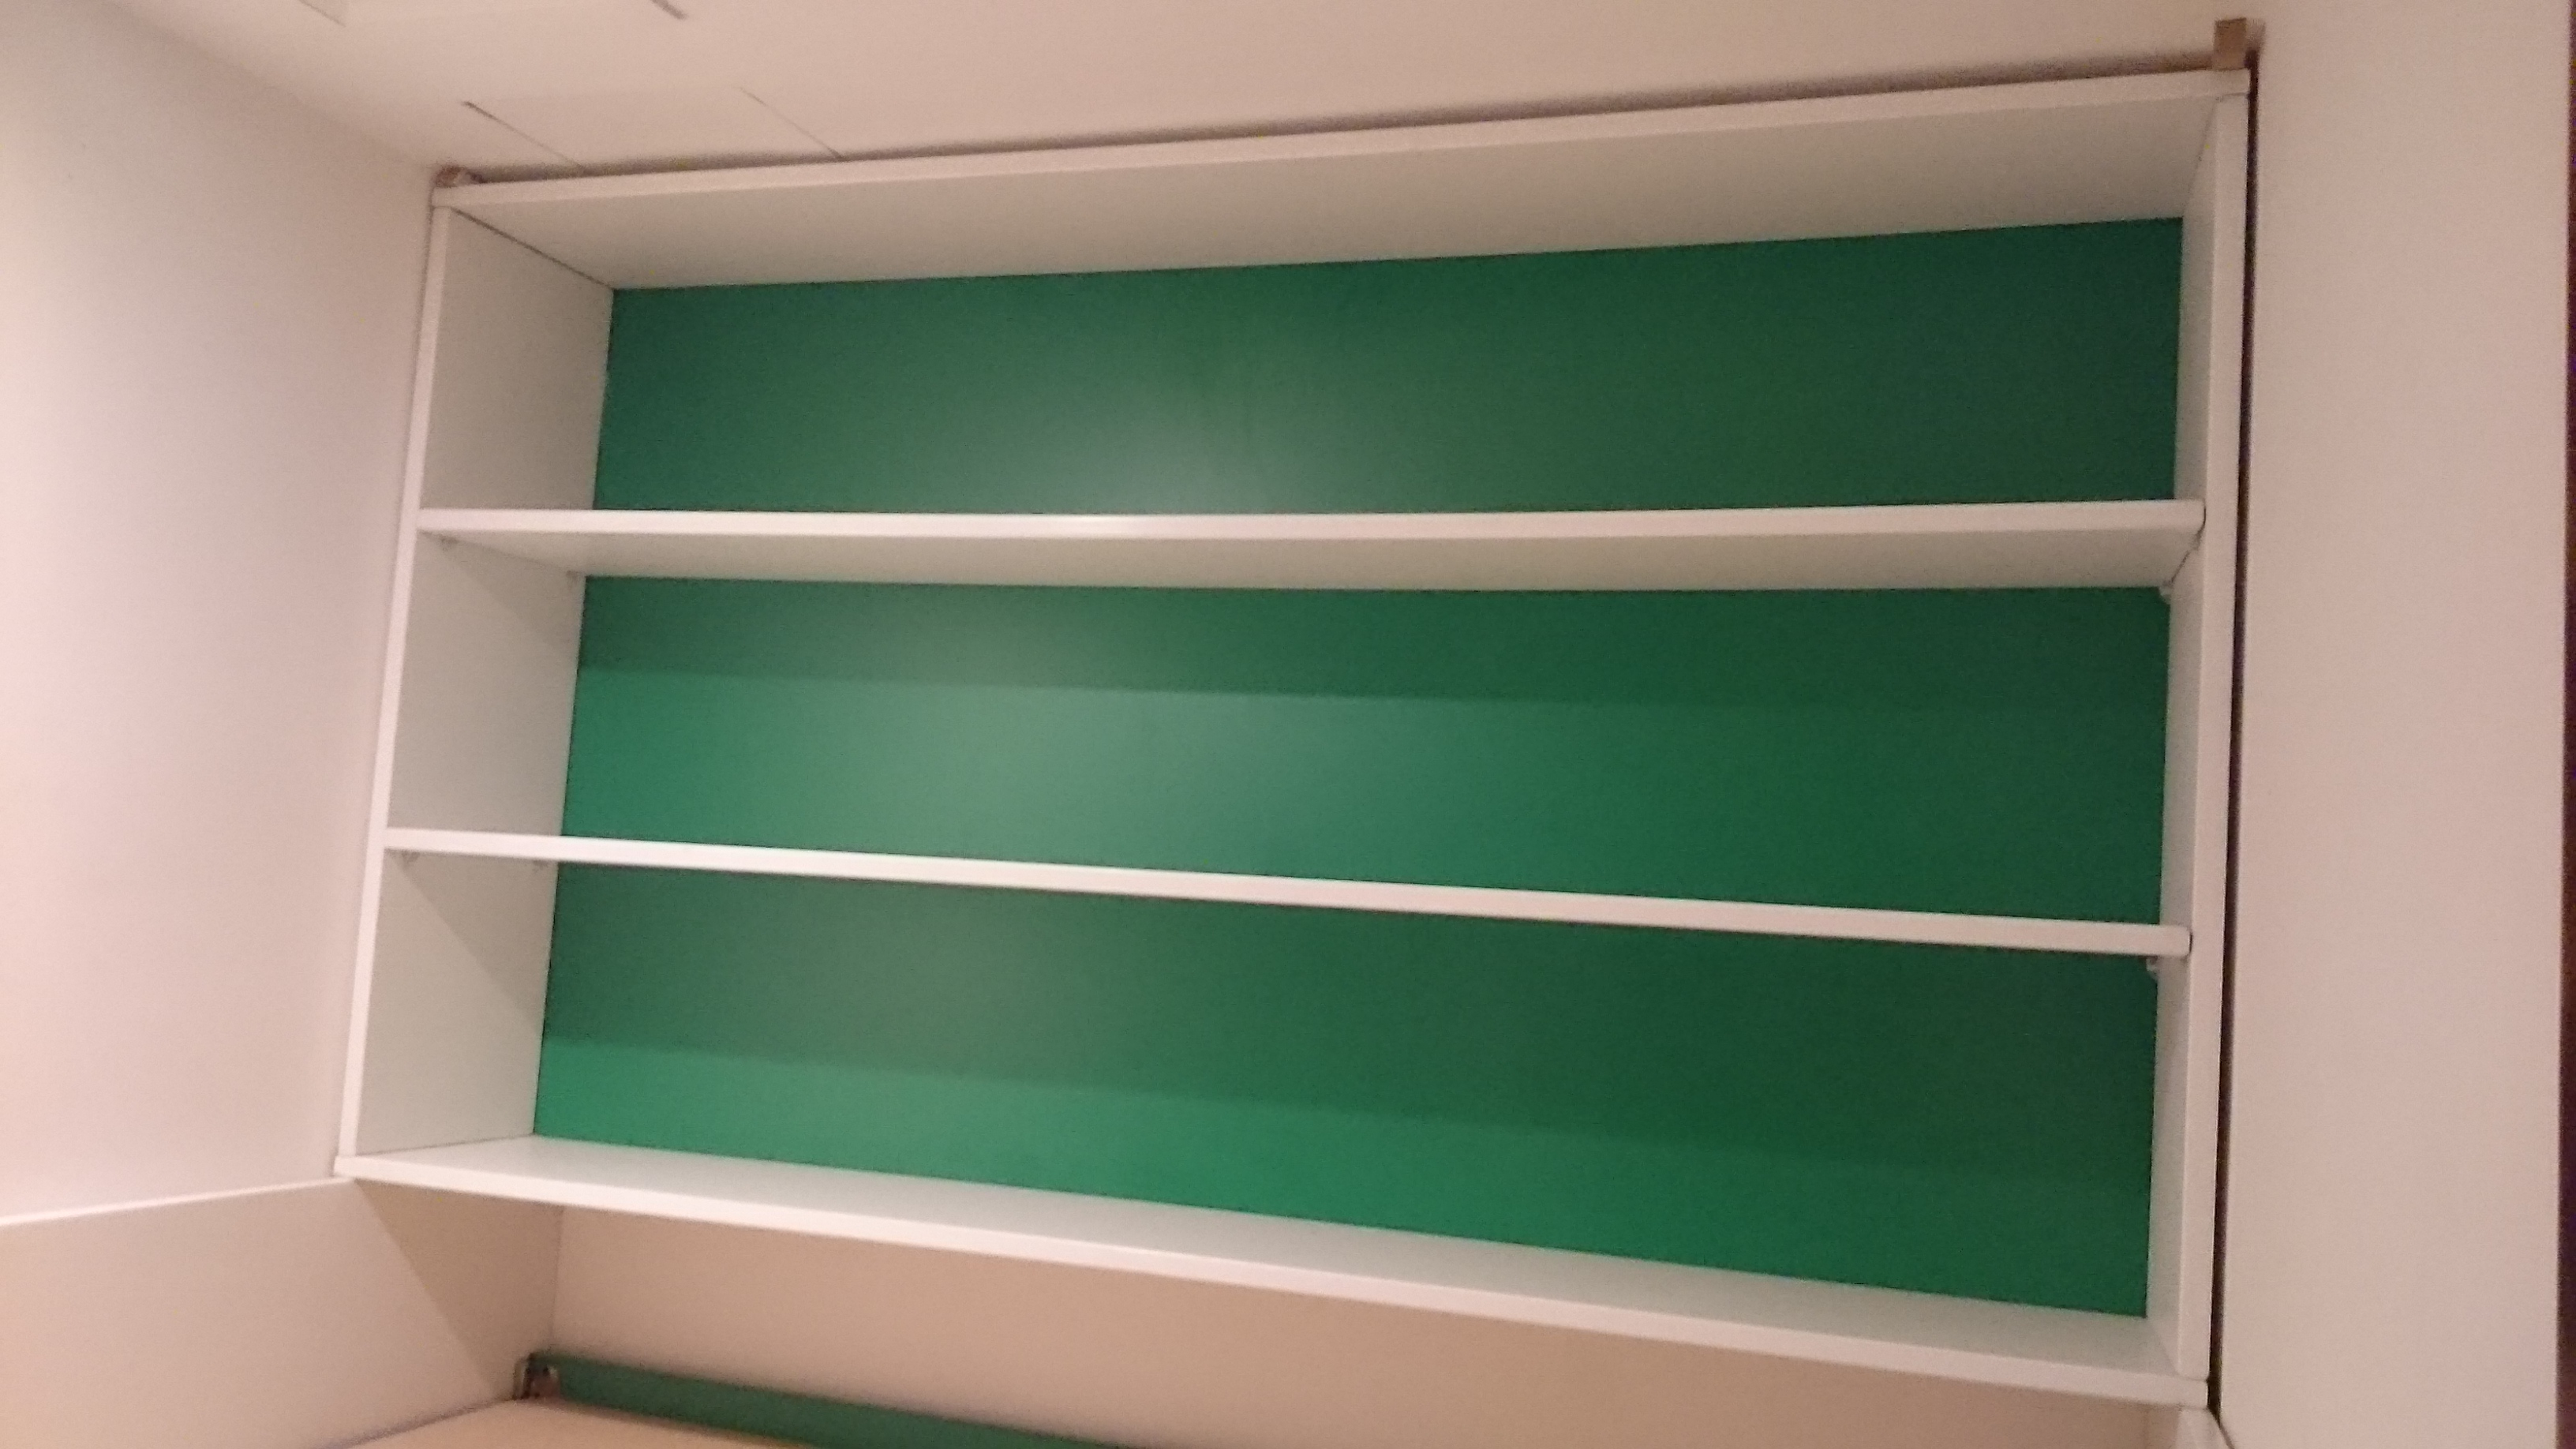 Bunk Bed Green And White Affordable Wall Beds